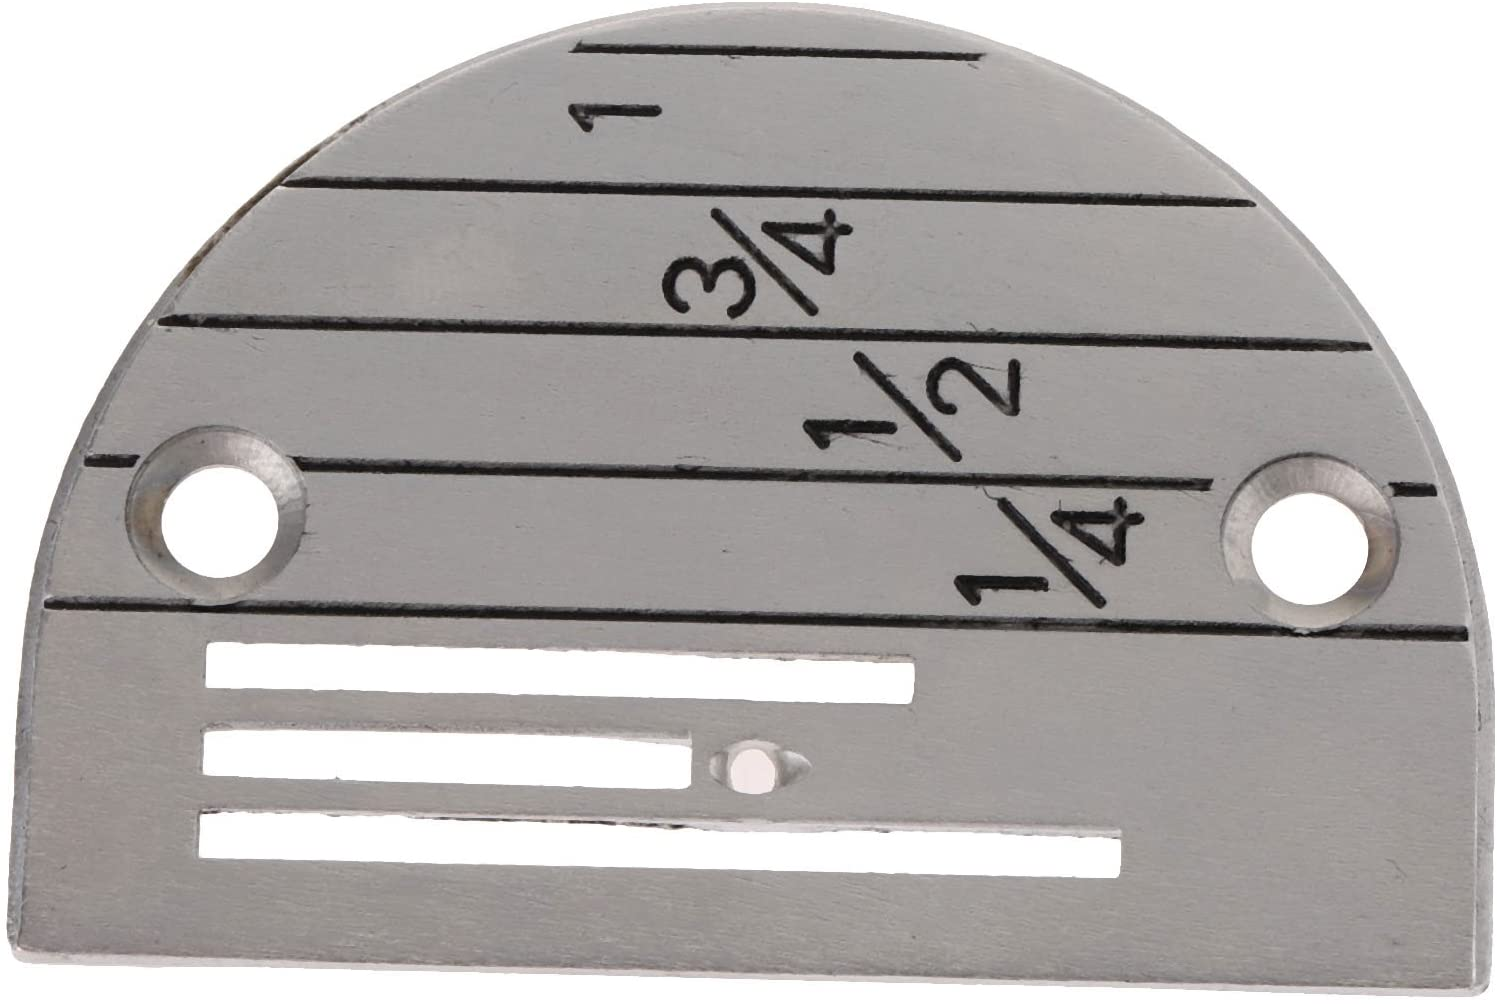 B18 Needle Plate for Industrial Sewing Machine